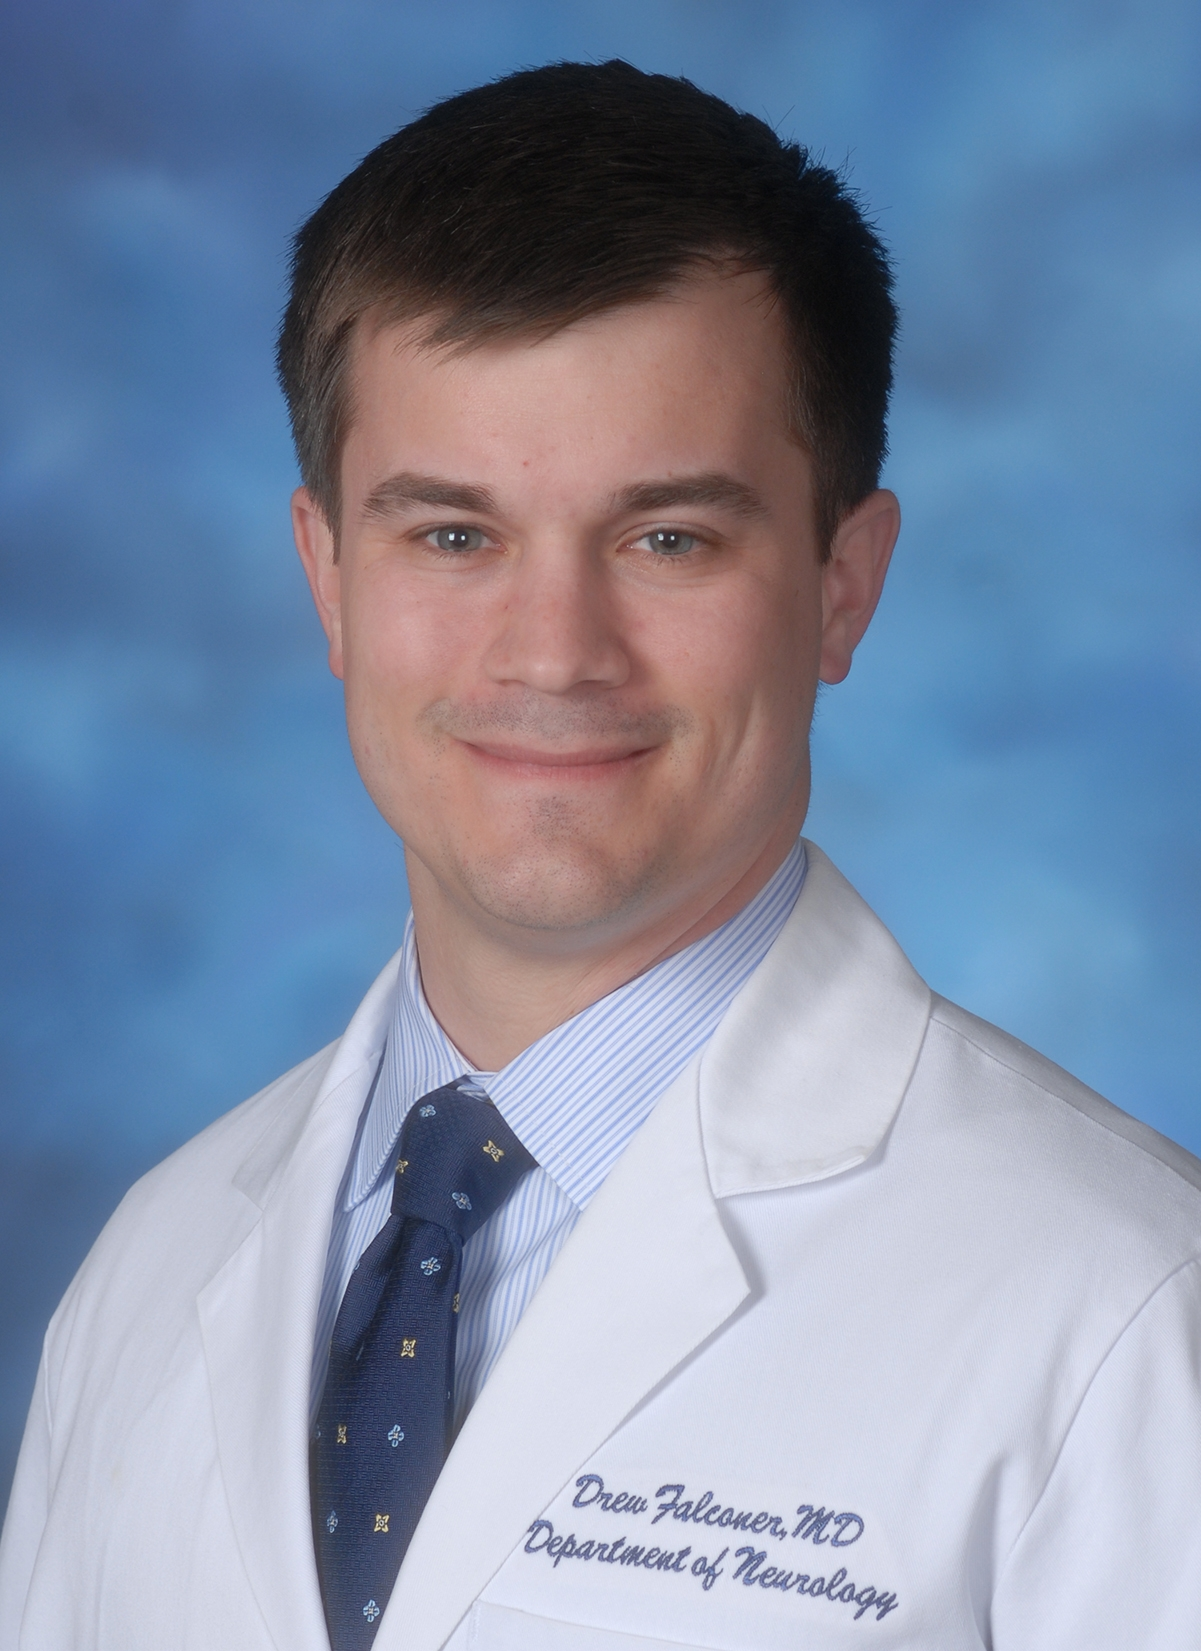 Drew Falconer, MD